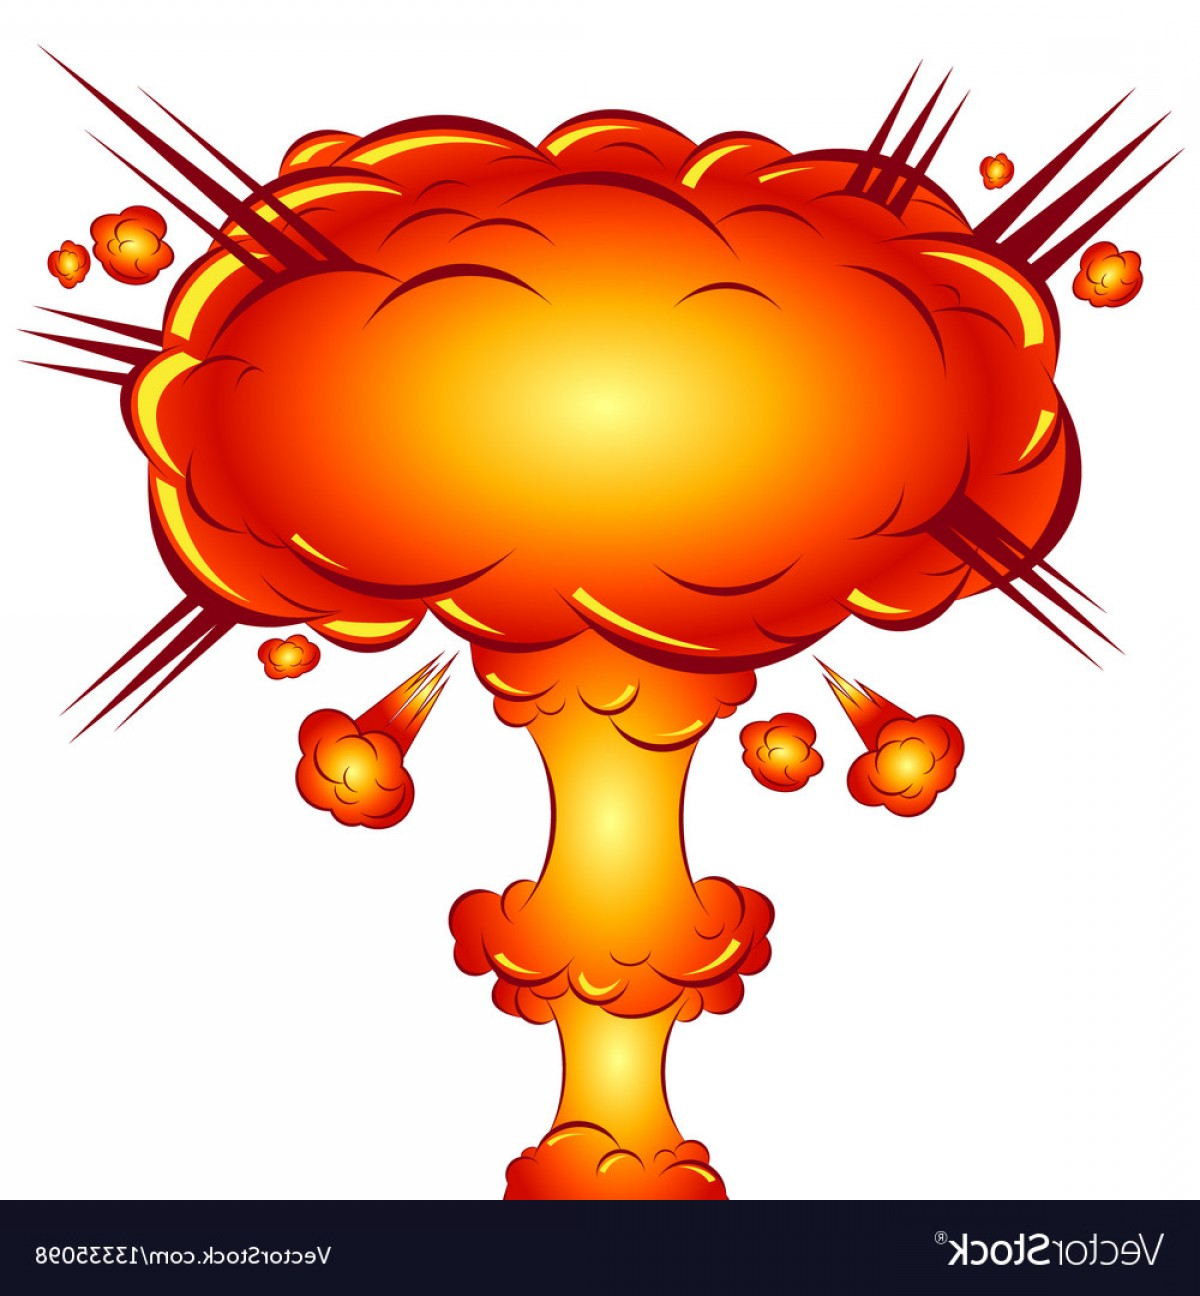 Atomic Bomb Explosion Vector: In The Style Of A Comic Explosion The Atomic Bomb Vector